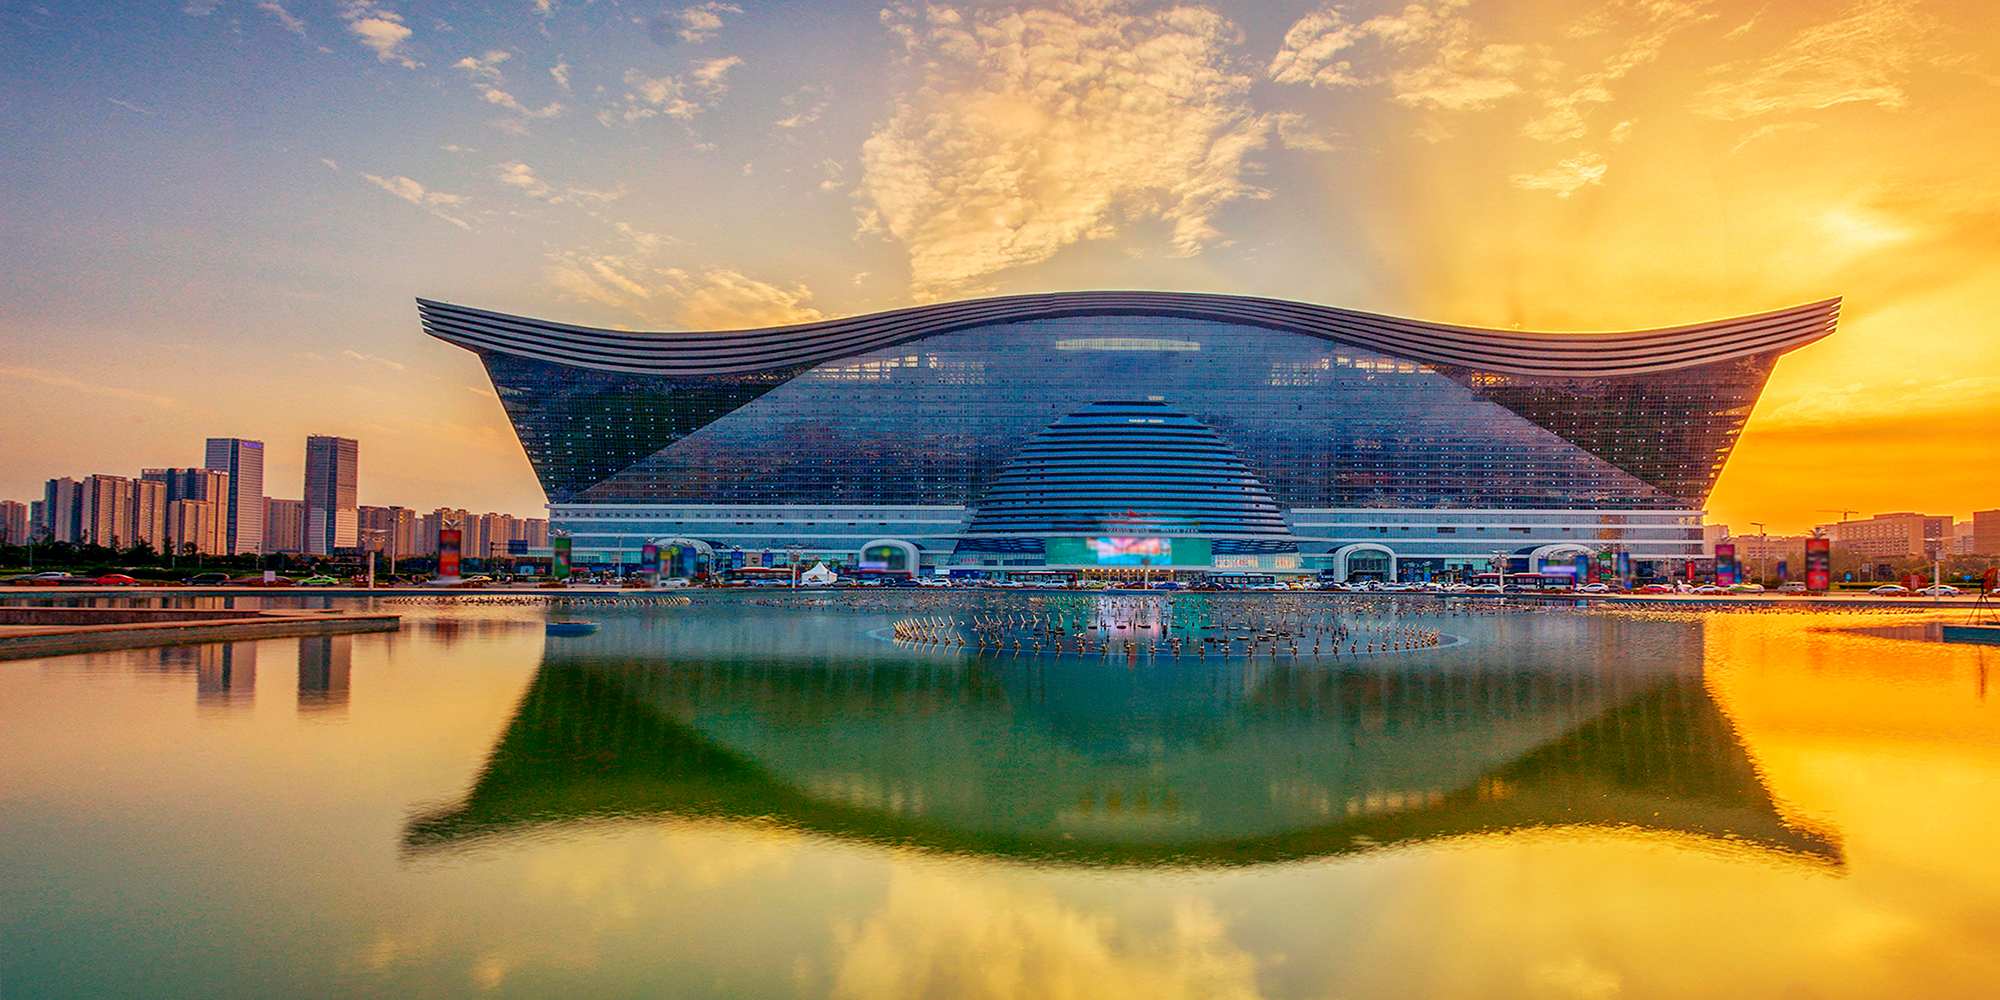 New century global center, i Kina